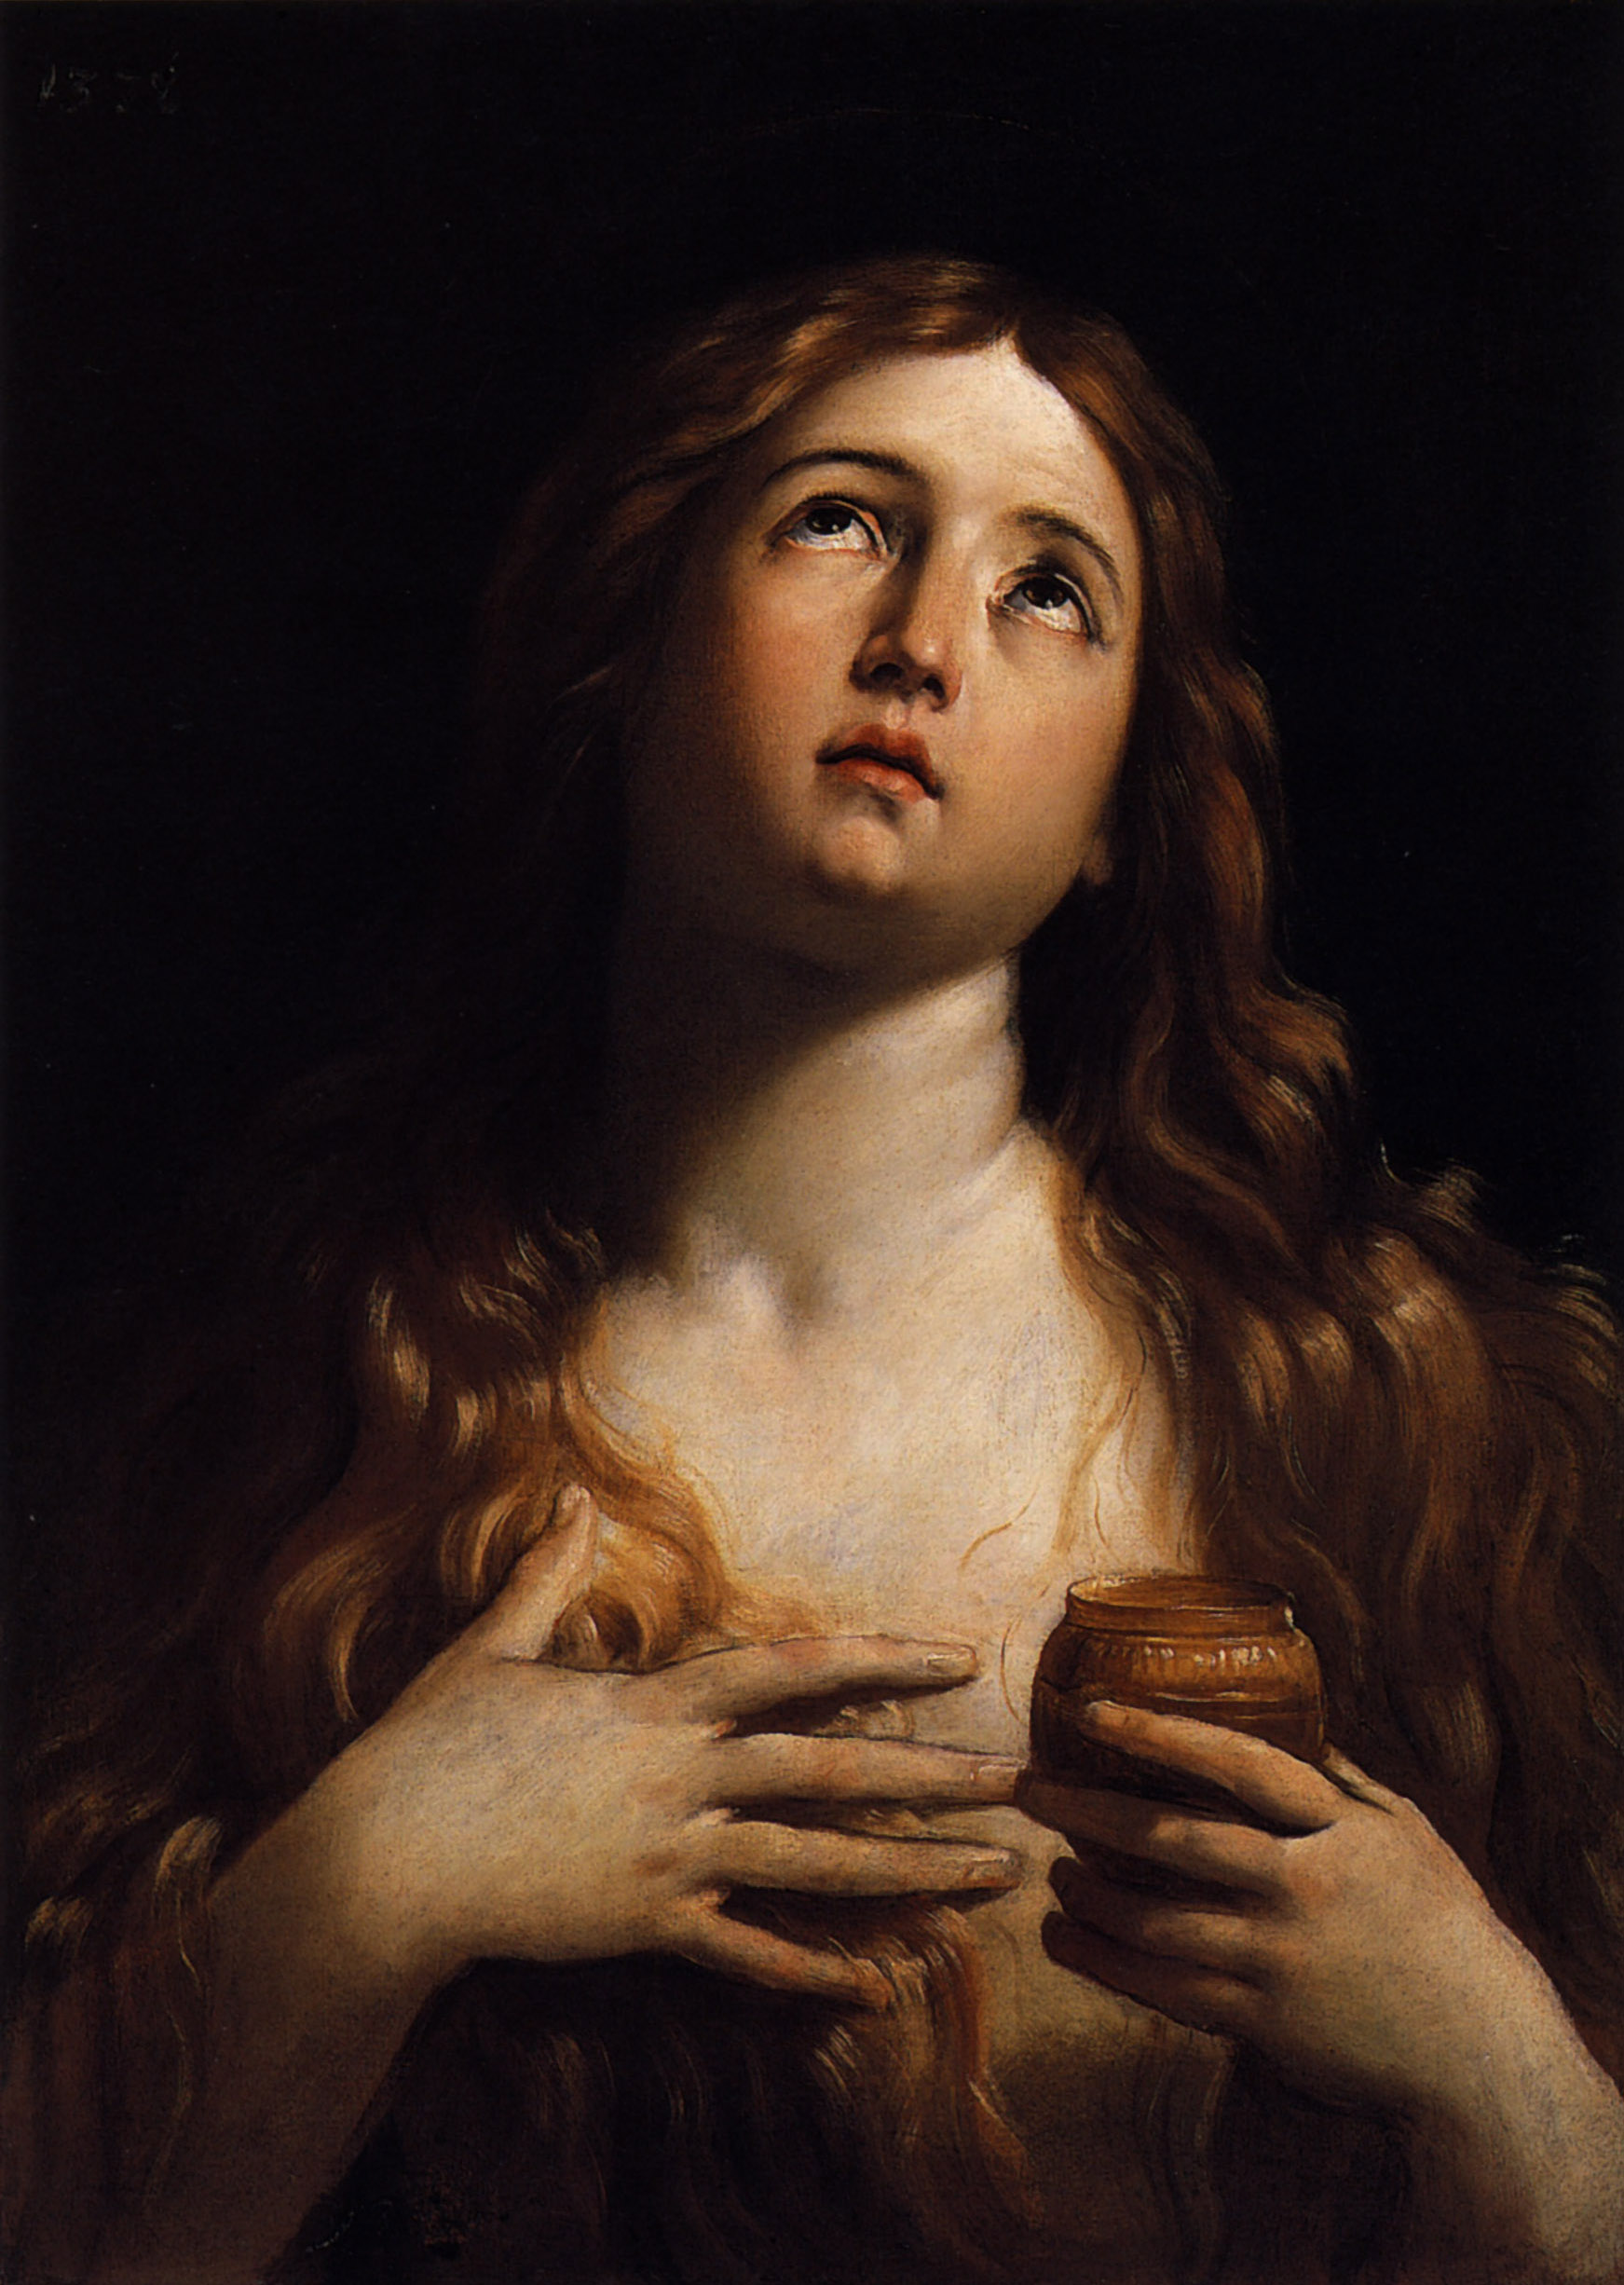 http://uploads0.wikipaintings.org/images/guido-reni/mary-magdalene-1616.jpg